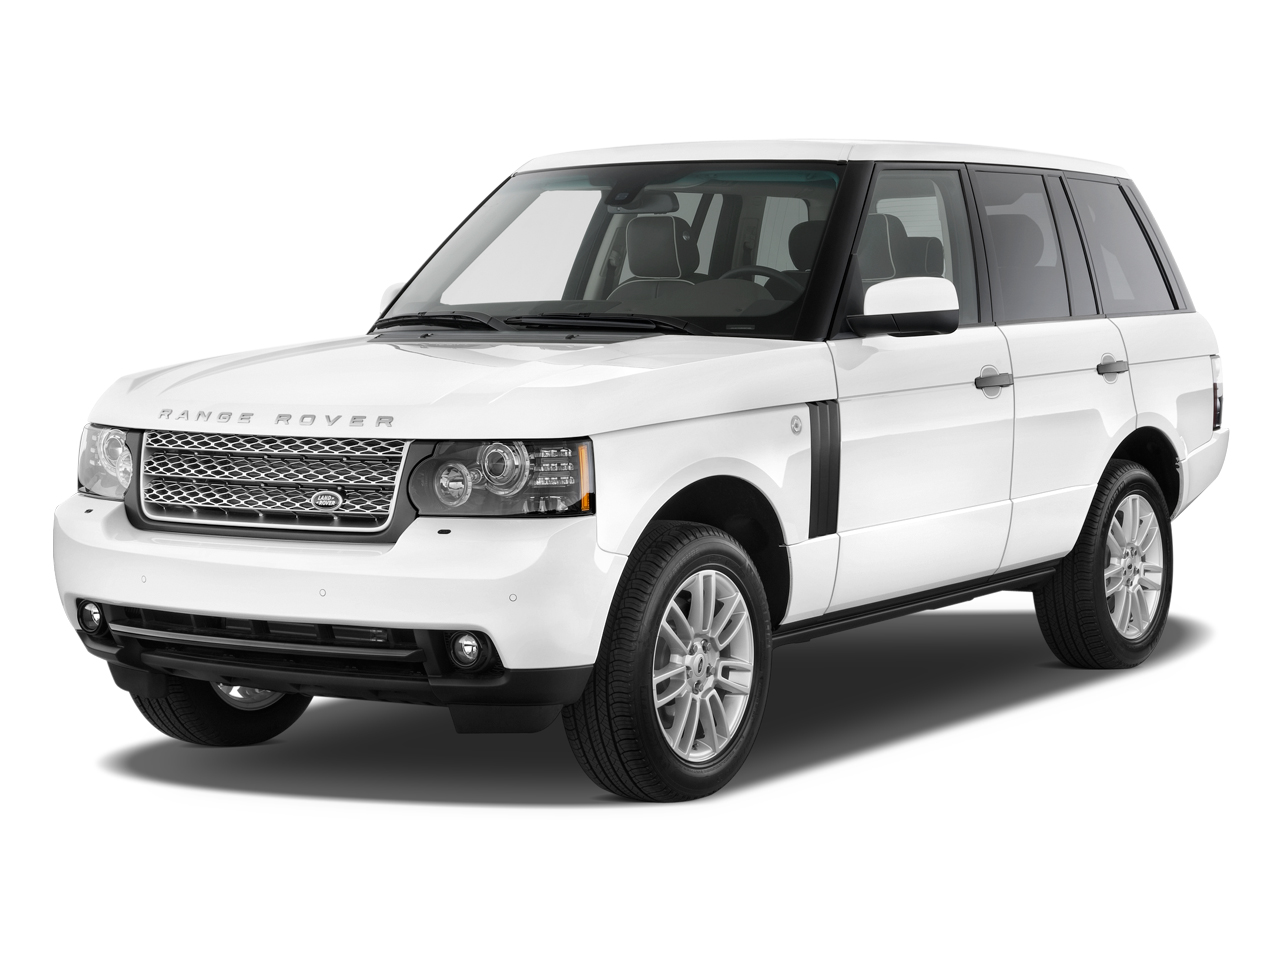 2010 Land Rover Range Rover Review, Ratings, Specs, Prices, and Photos -  The Car ConnectionThe Car Connection